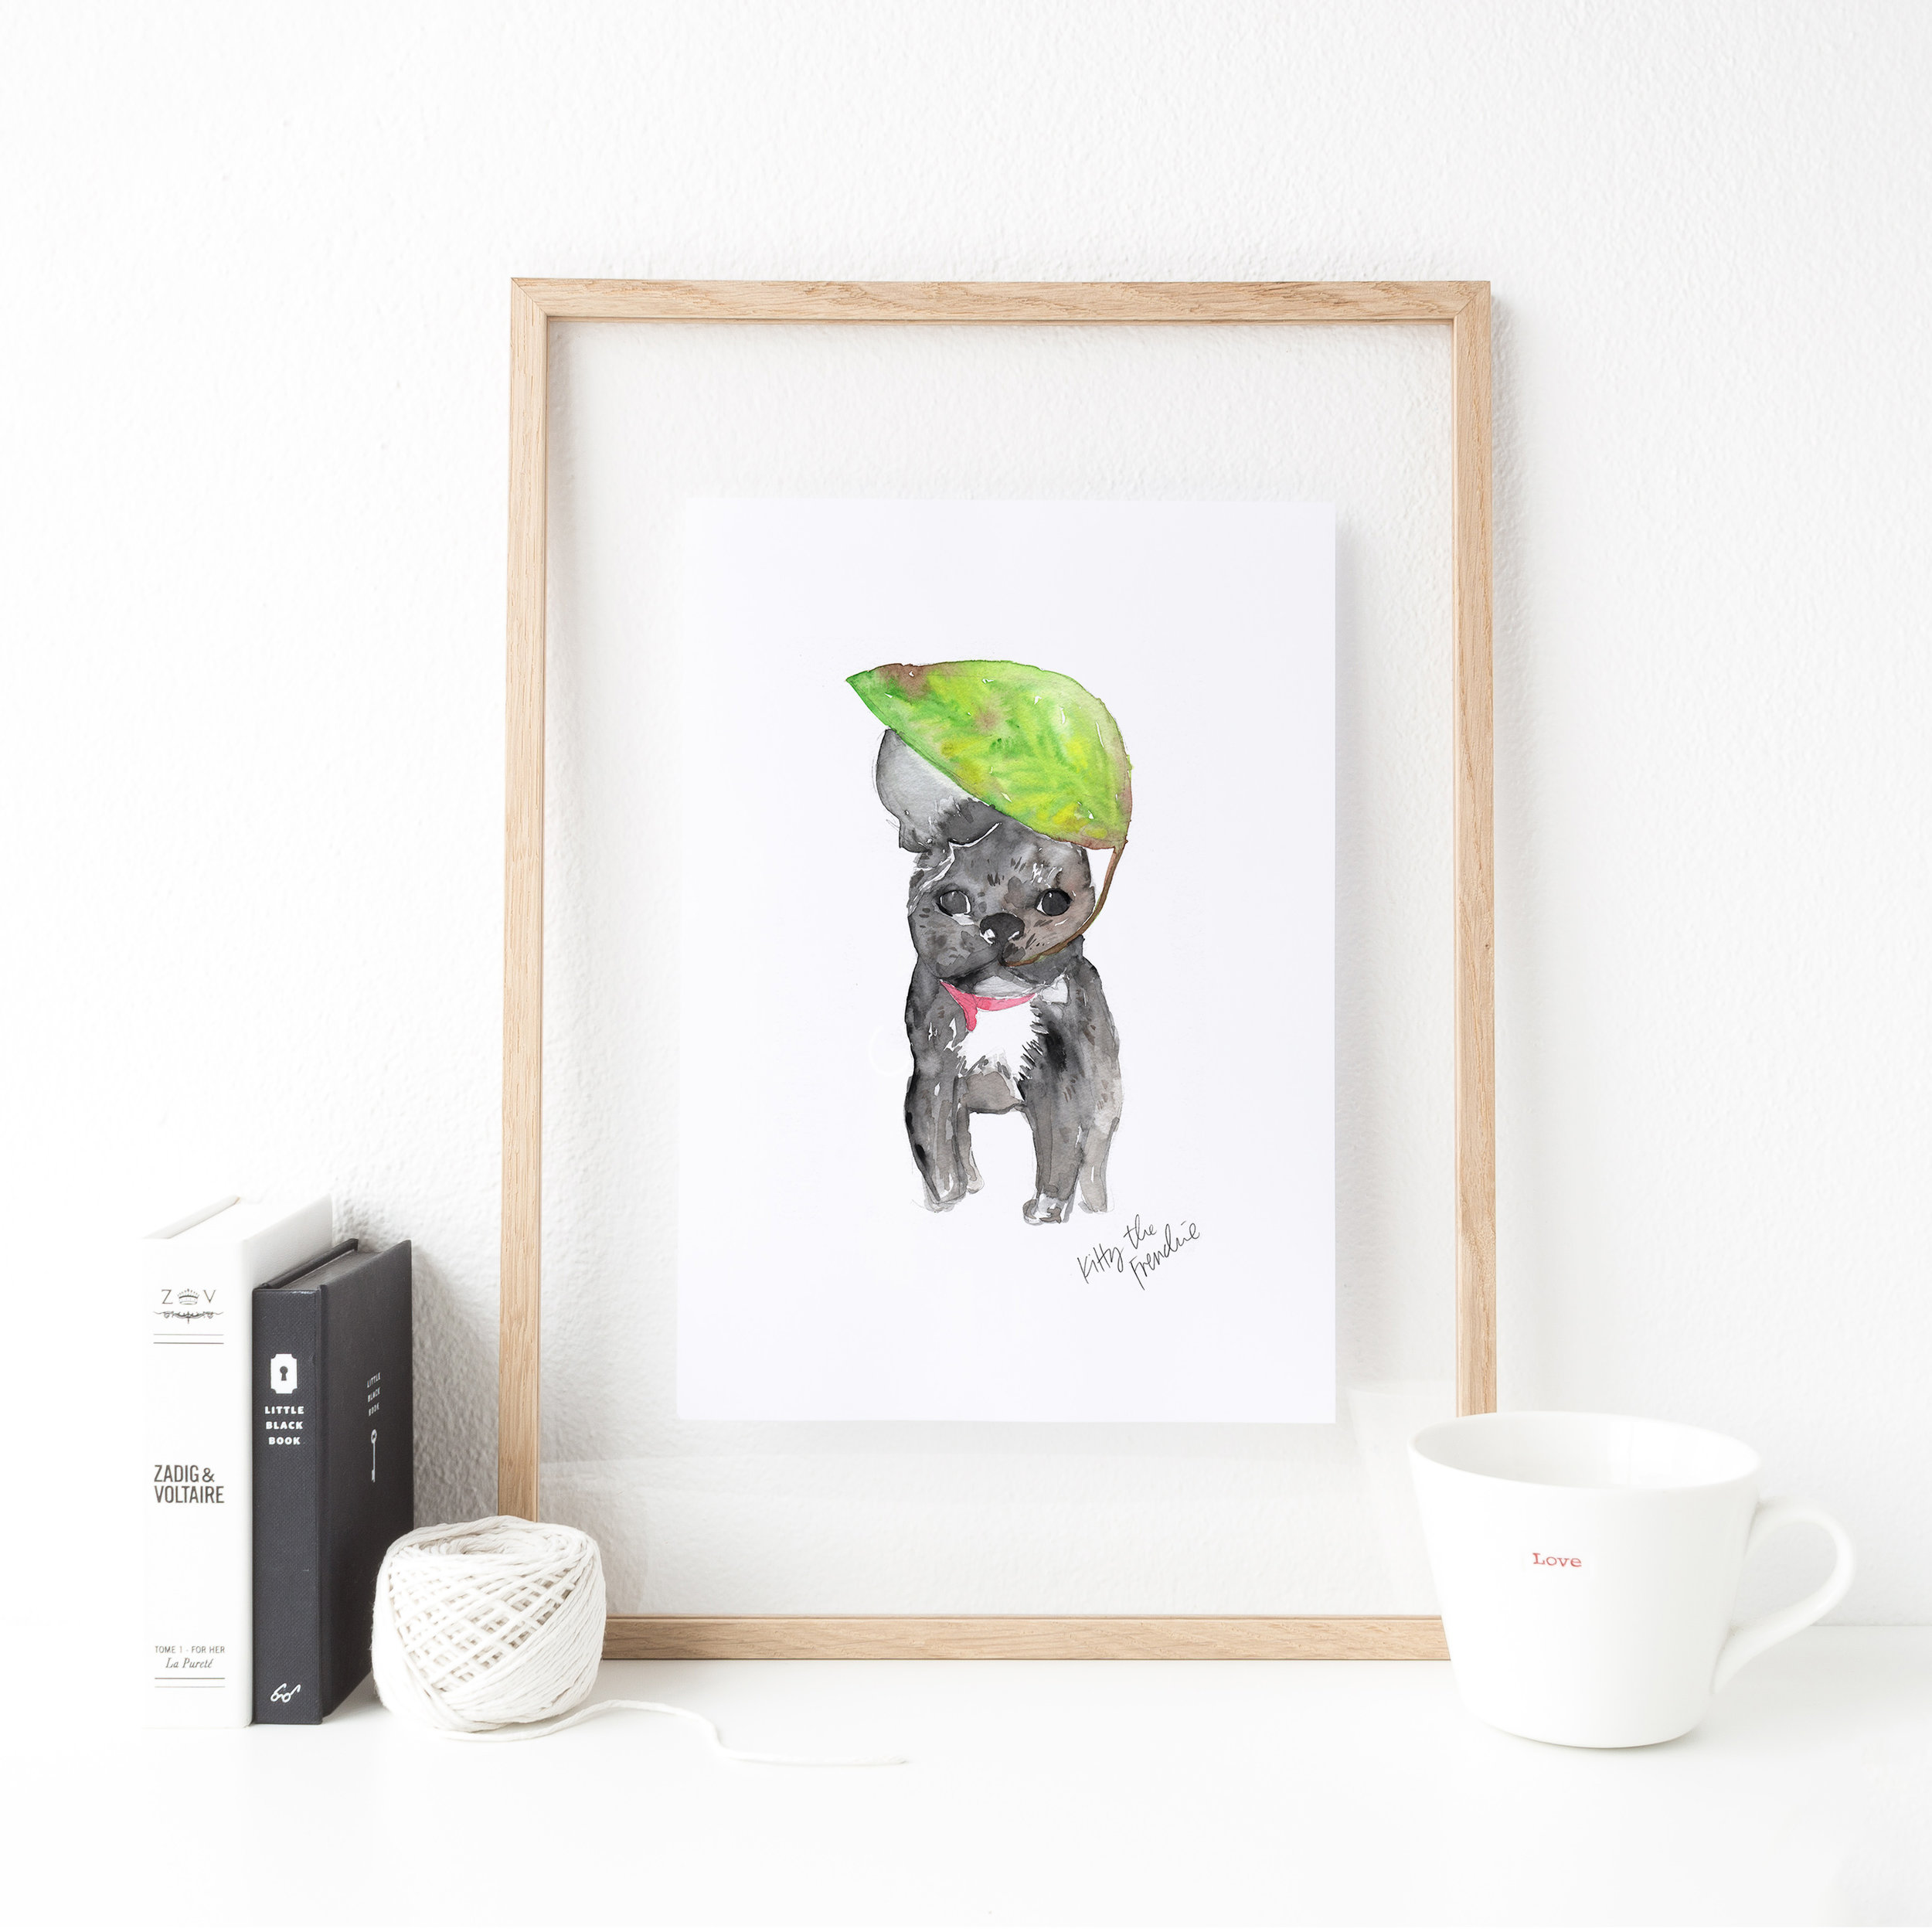 Custom Art Prints - Because personalized is always better.